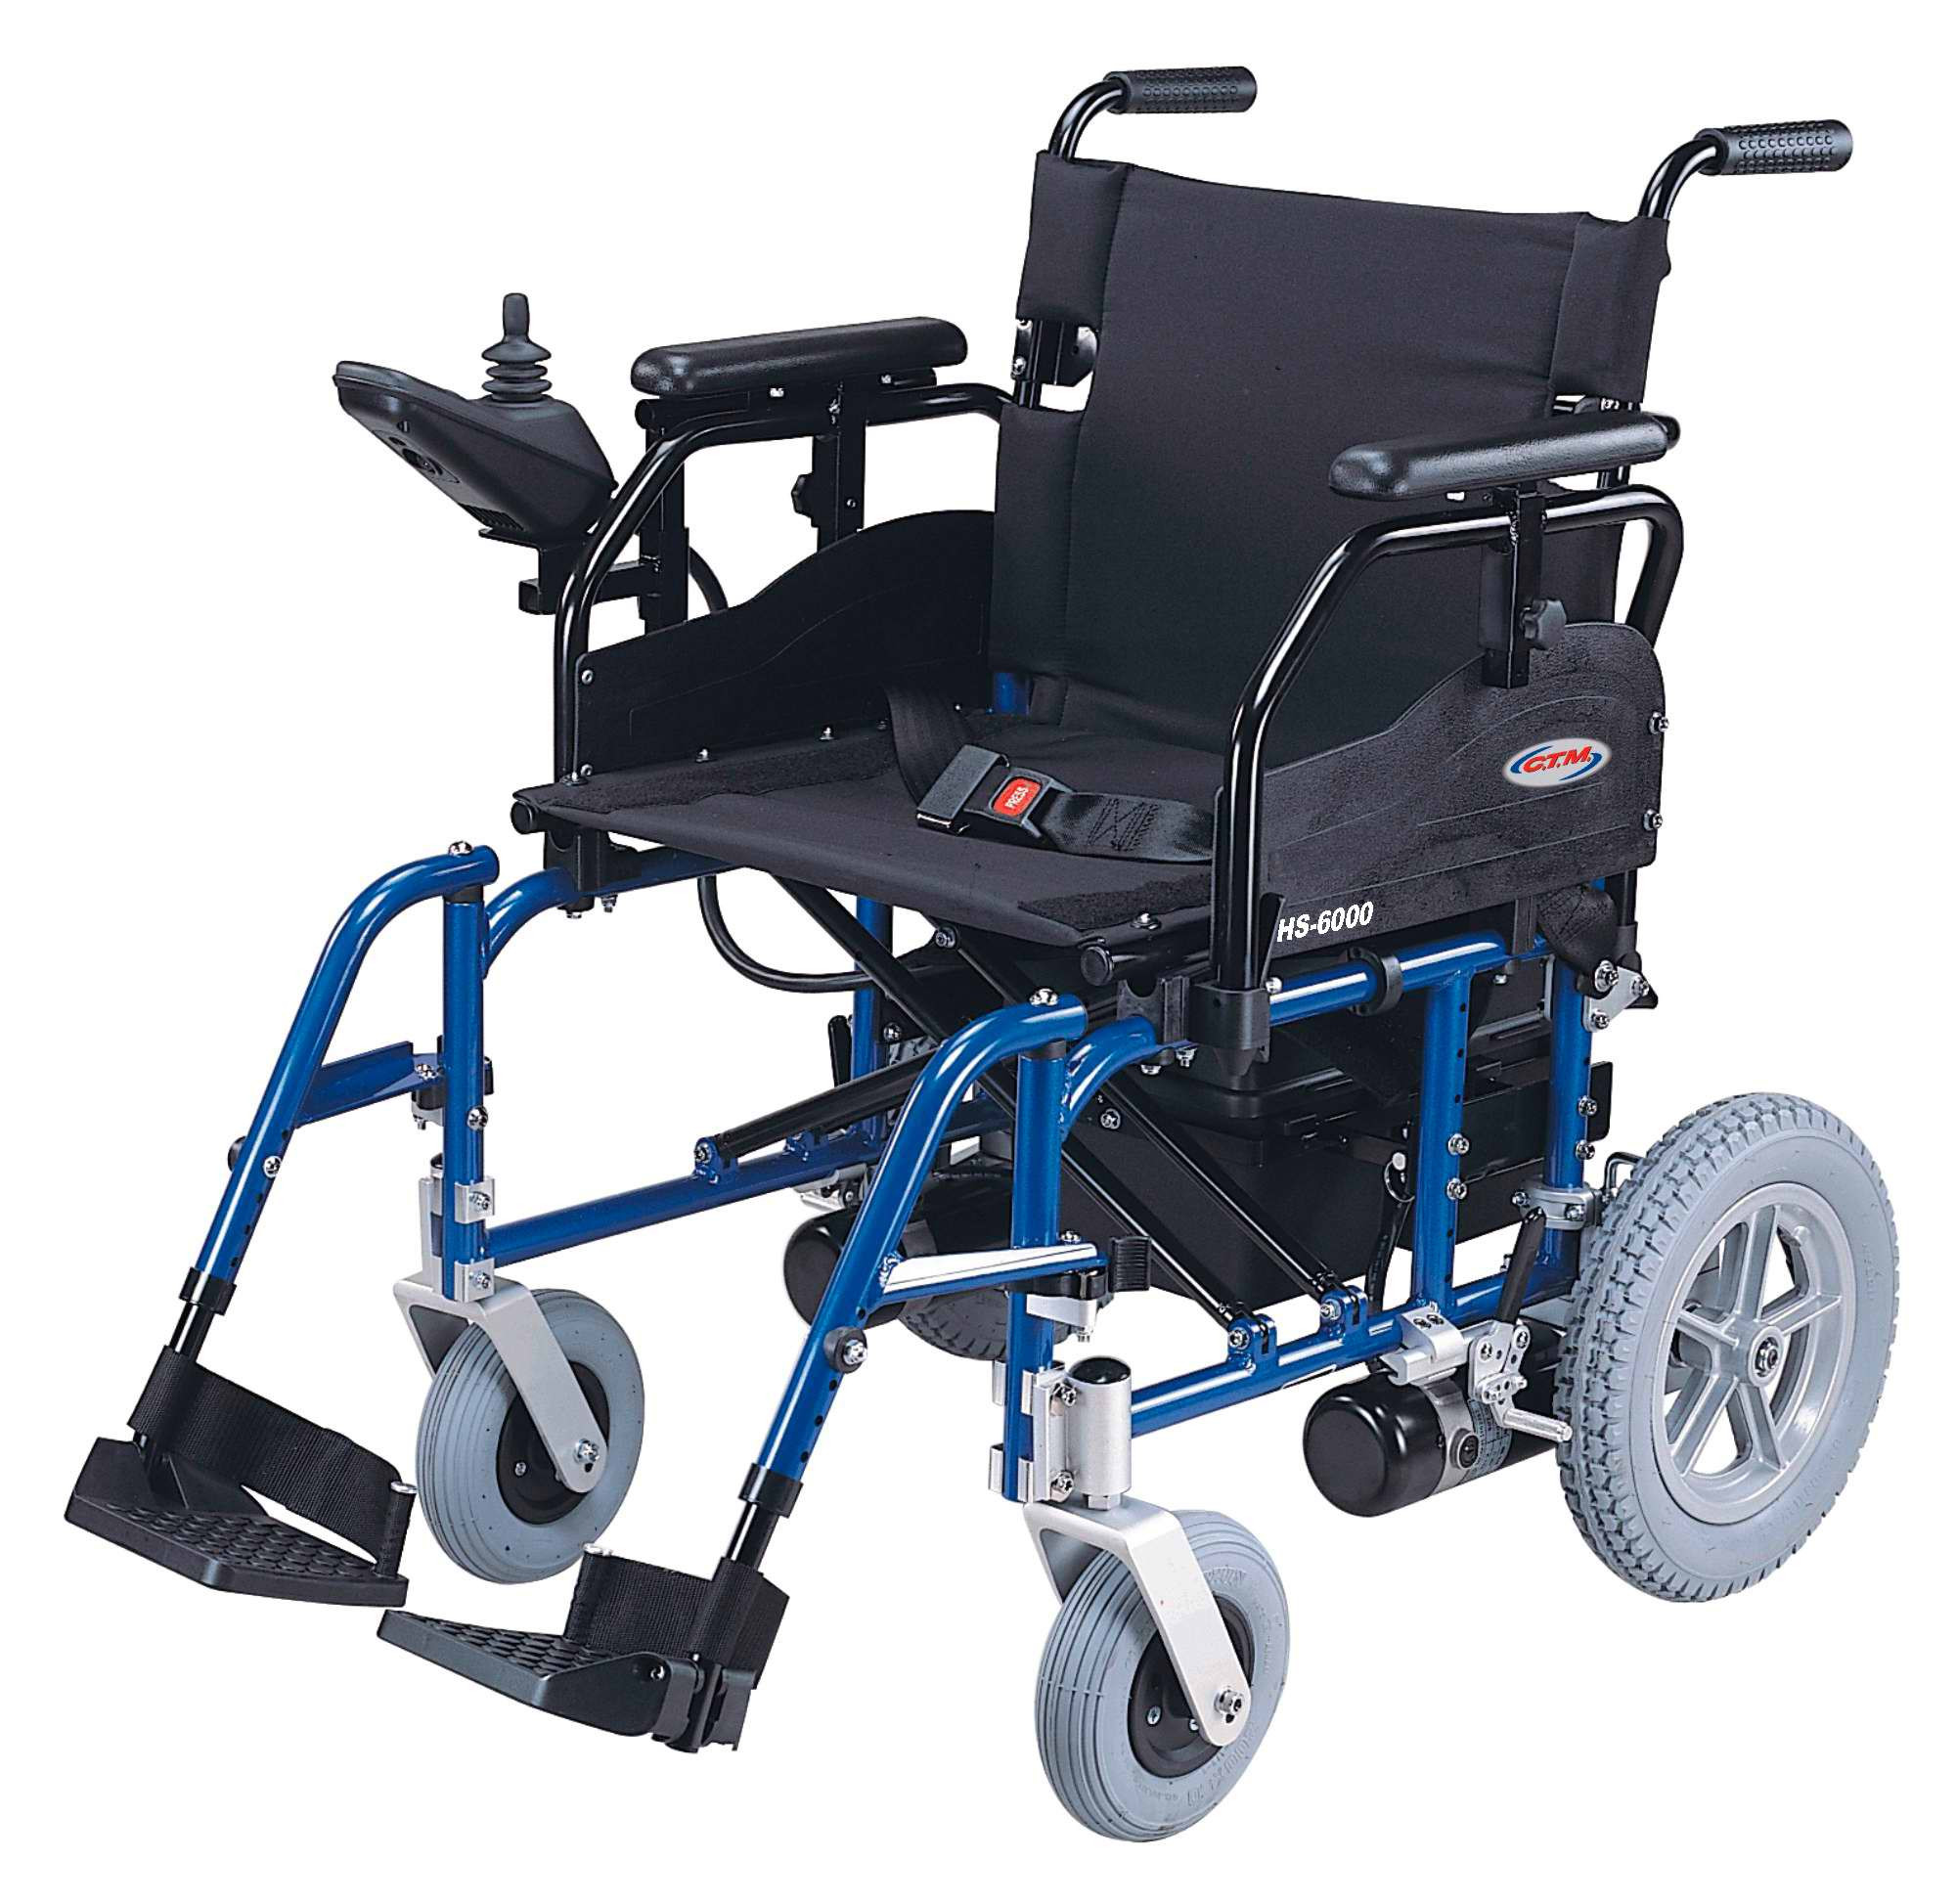 Electric Wheel Chairs Ctm Hs 6200 Power Wheelchair For Sale Lowest Prices Tax